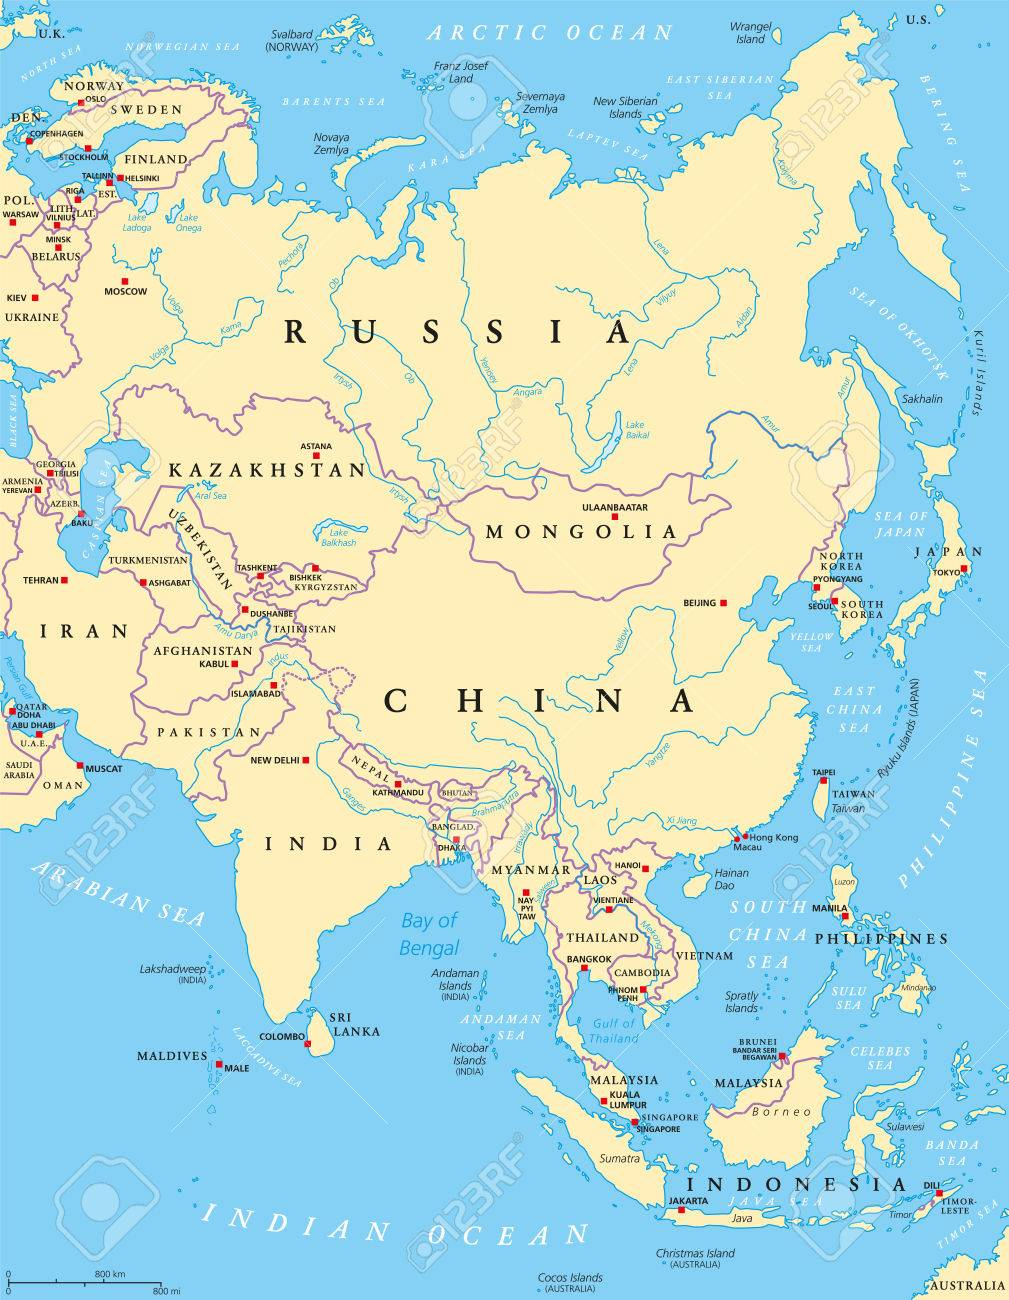 Map Of Asia Rivers And Seas.Asia Political Map With Capitals National Borders Rivers And